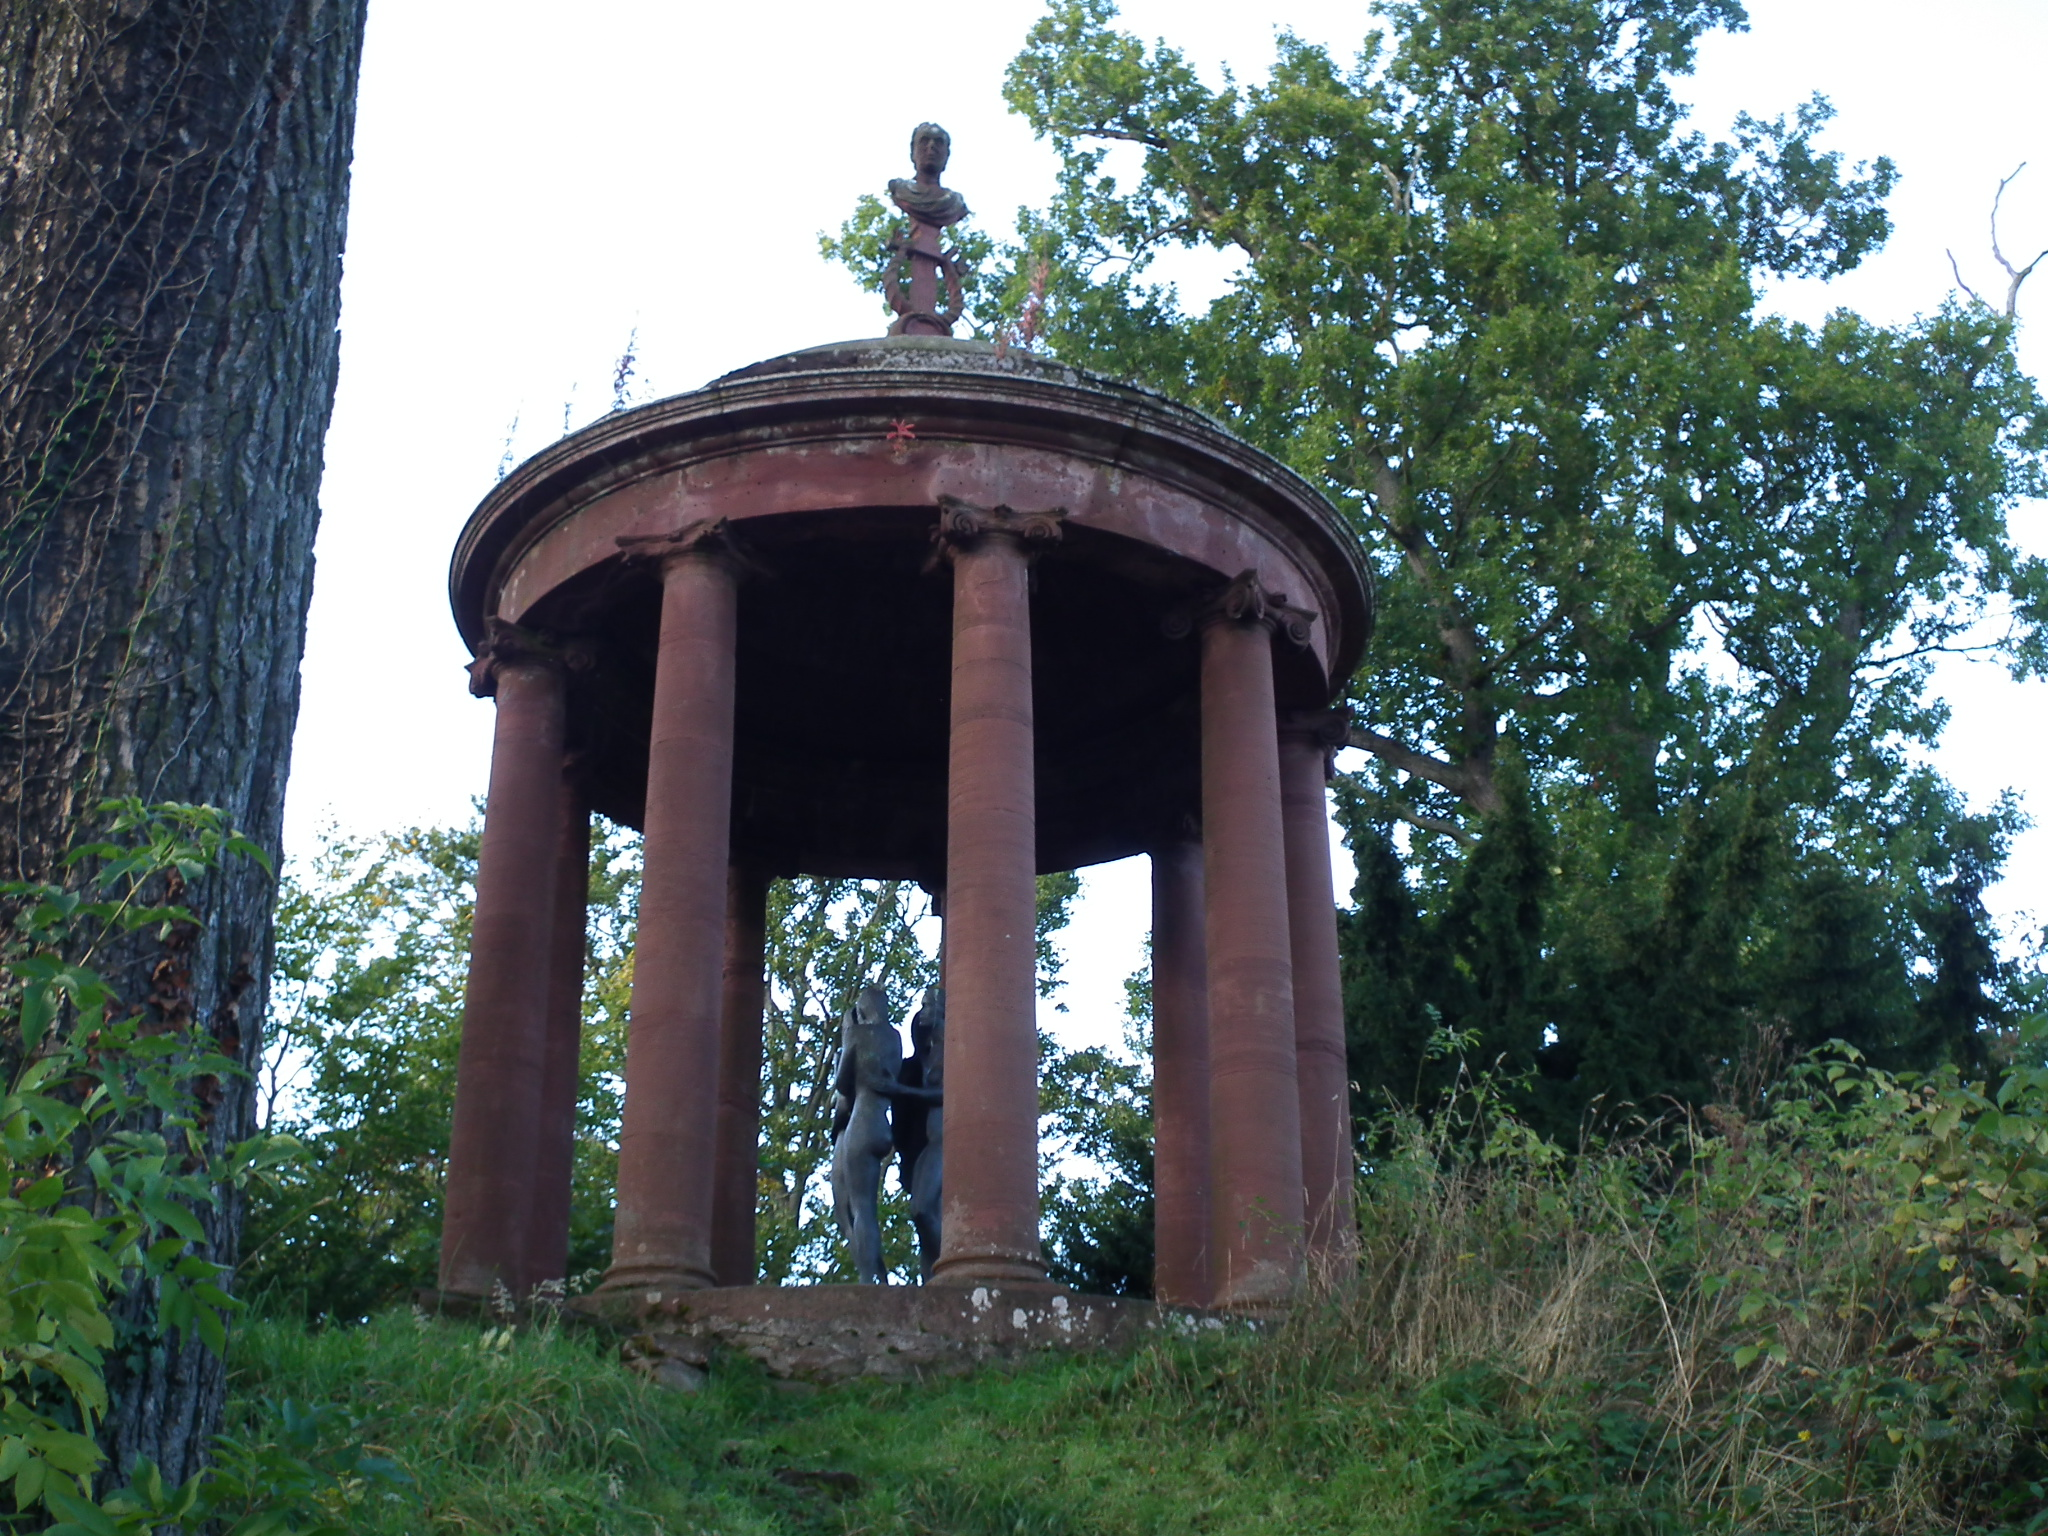 The Temple of the Muses